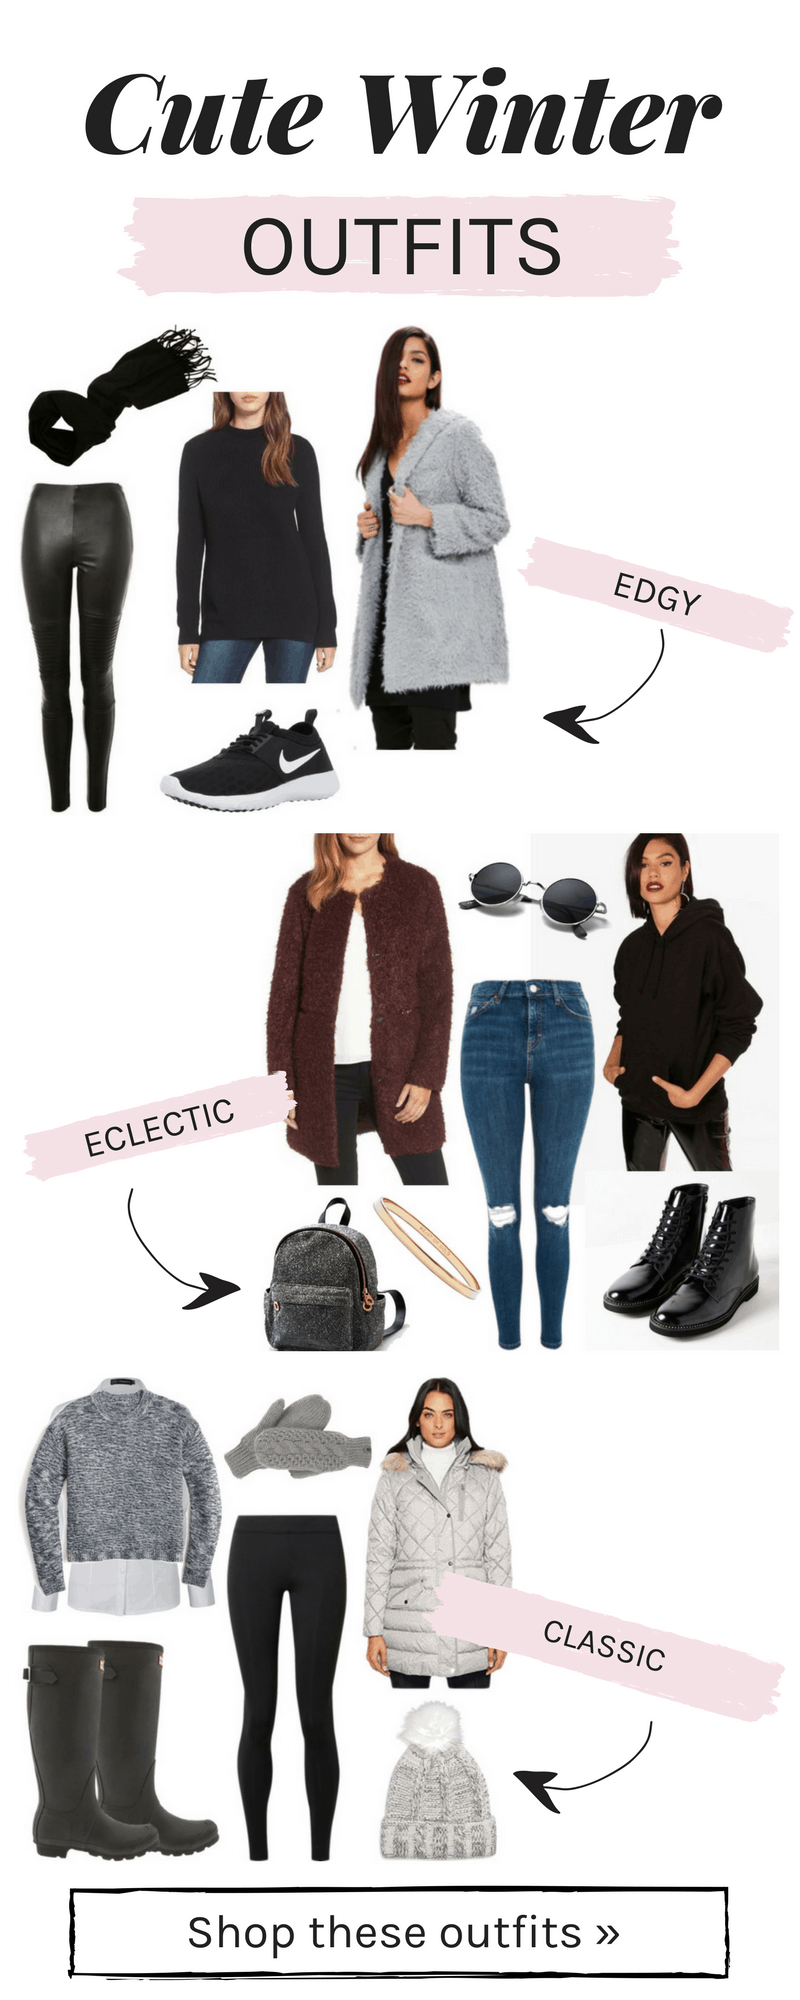 Cute winter outfits: Eclectic, edgy, and classic winter outfit ideas for women